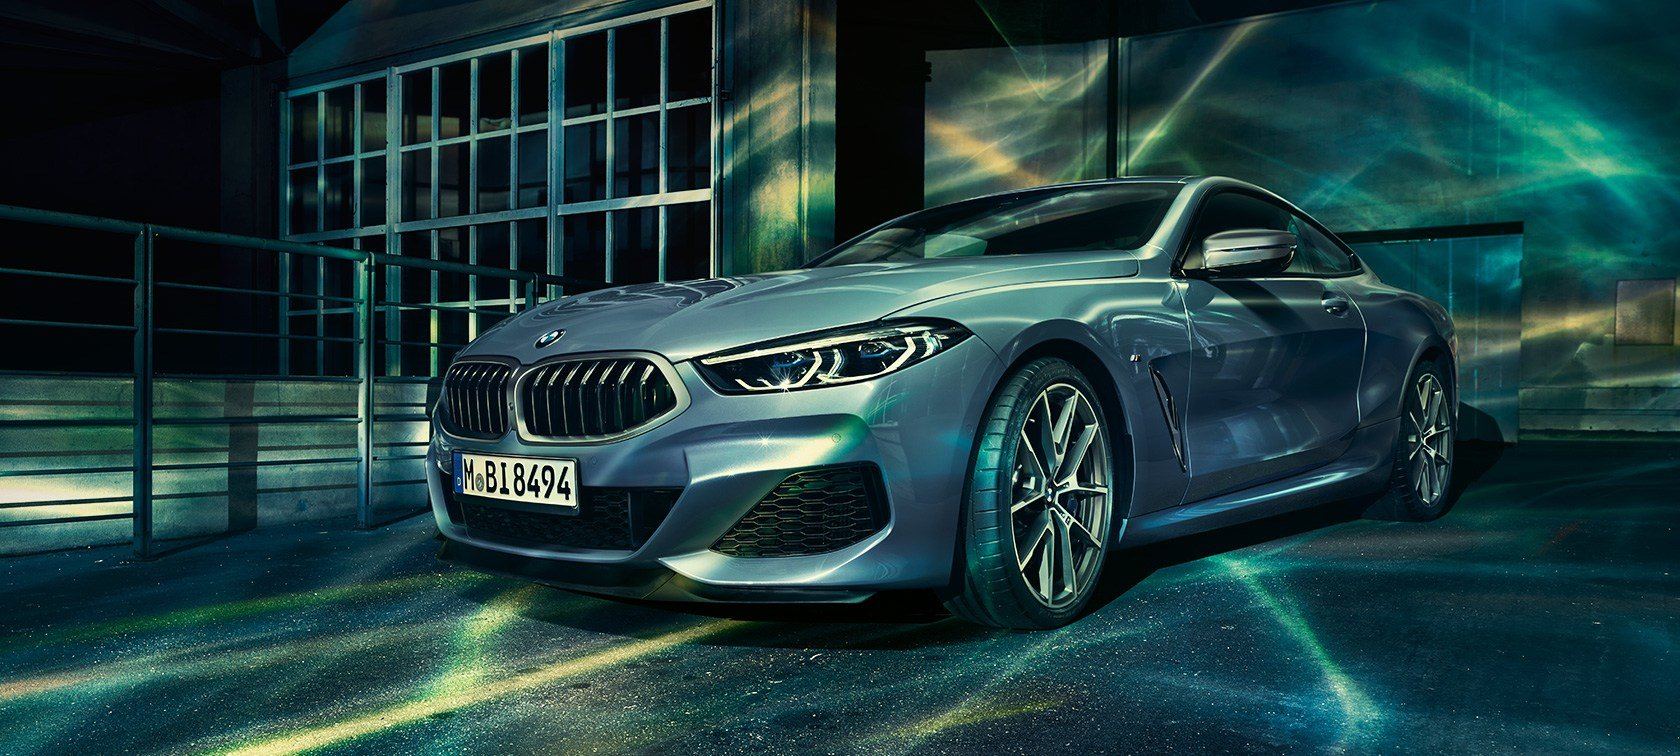 Latest The 8 O Automóvel Desportivo De Luxo Da Bmw Bmw Pt Free Download